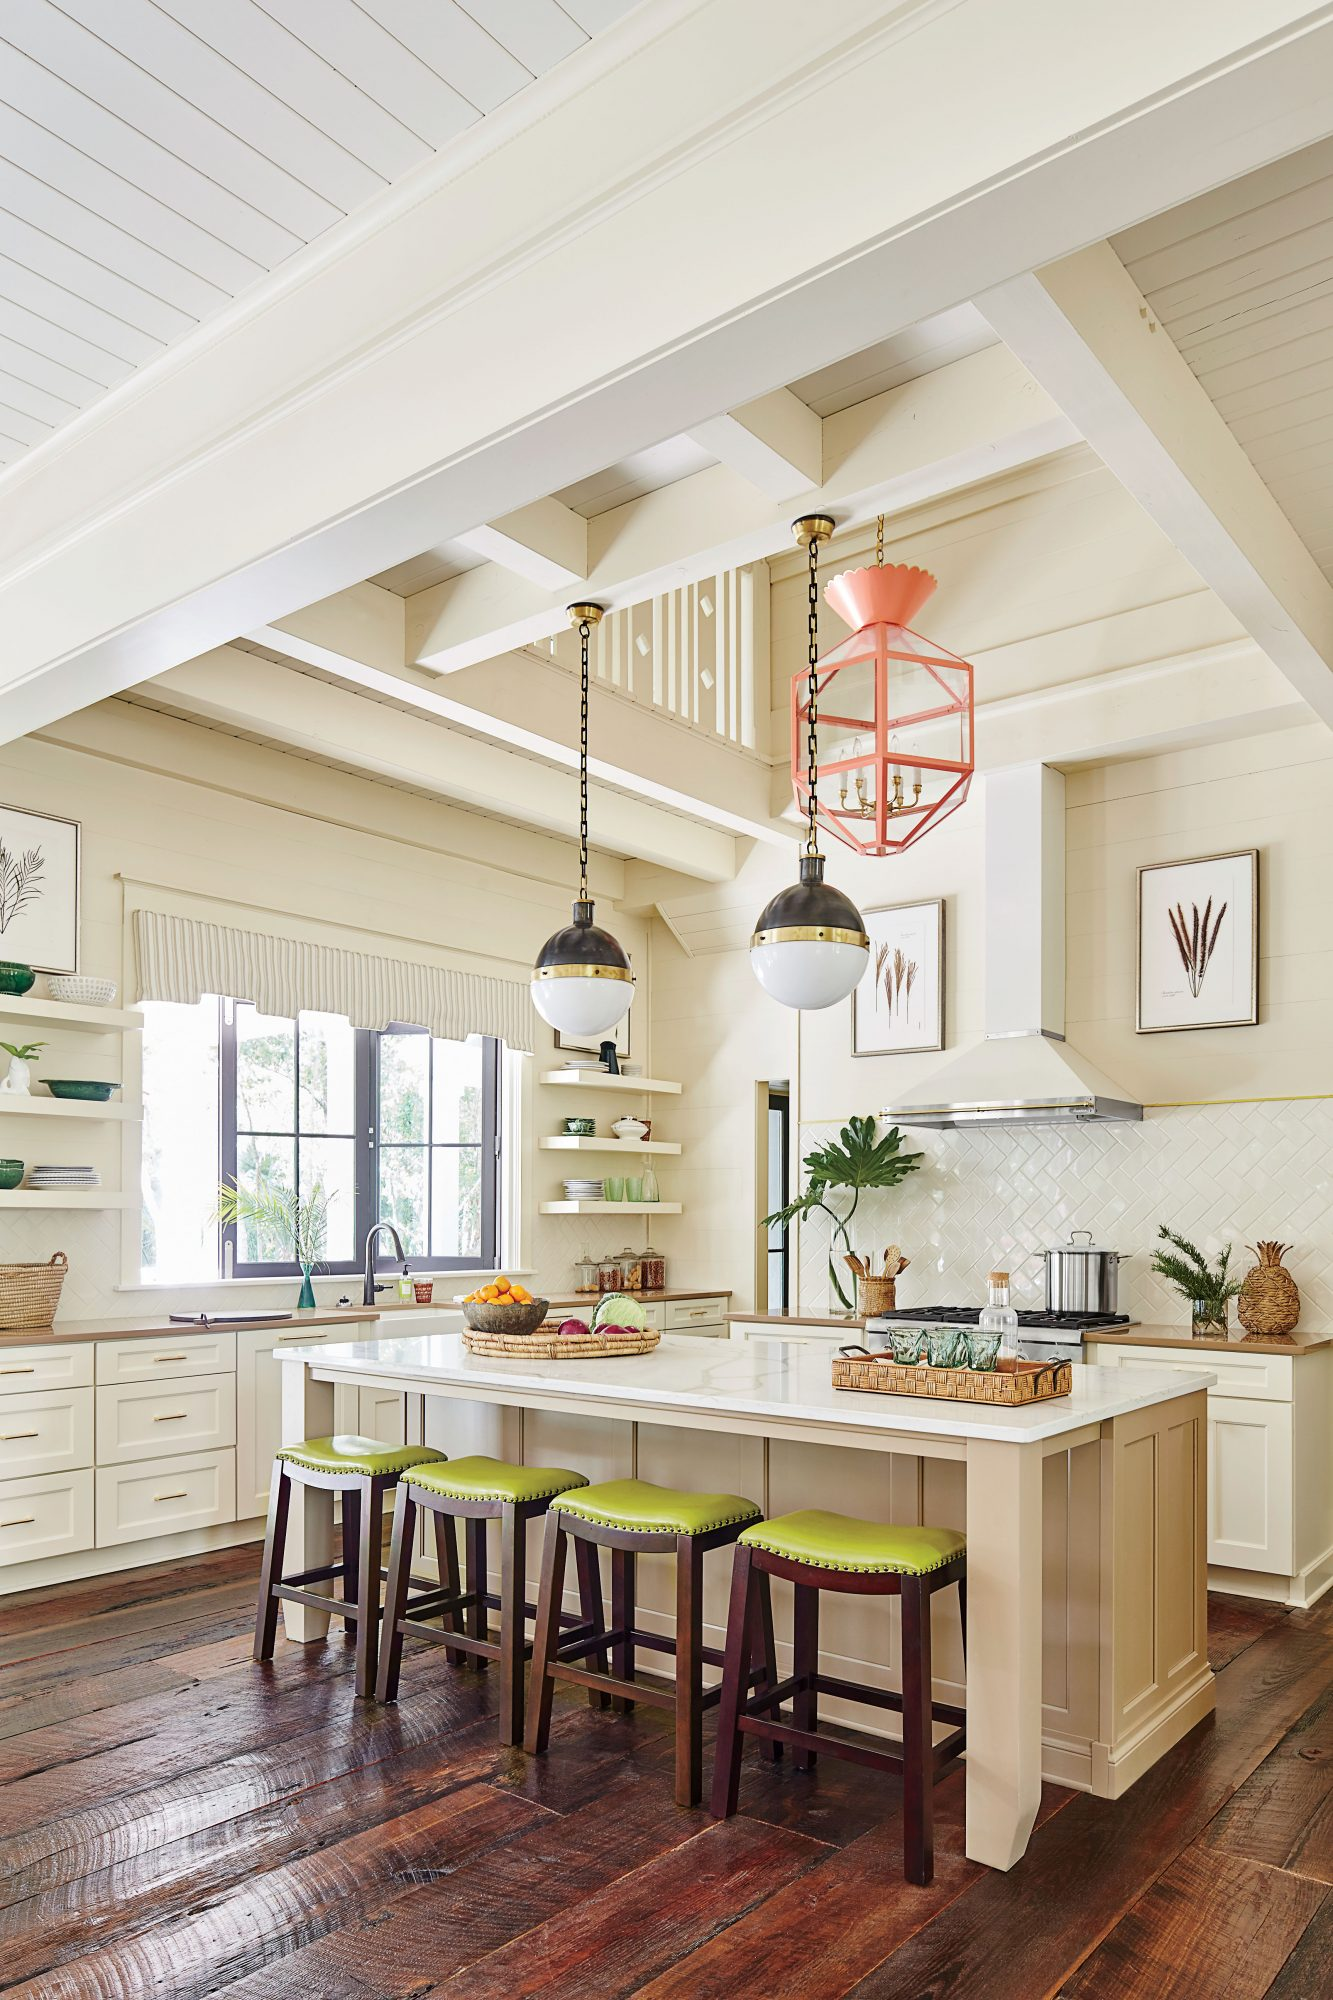 What Does It Take To Make A Kitchen Welcoming? - Southern Living